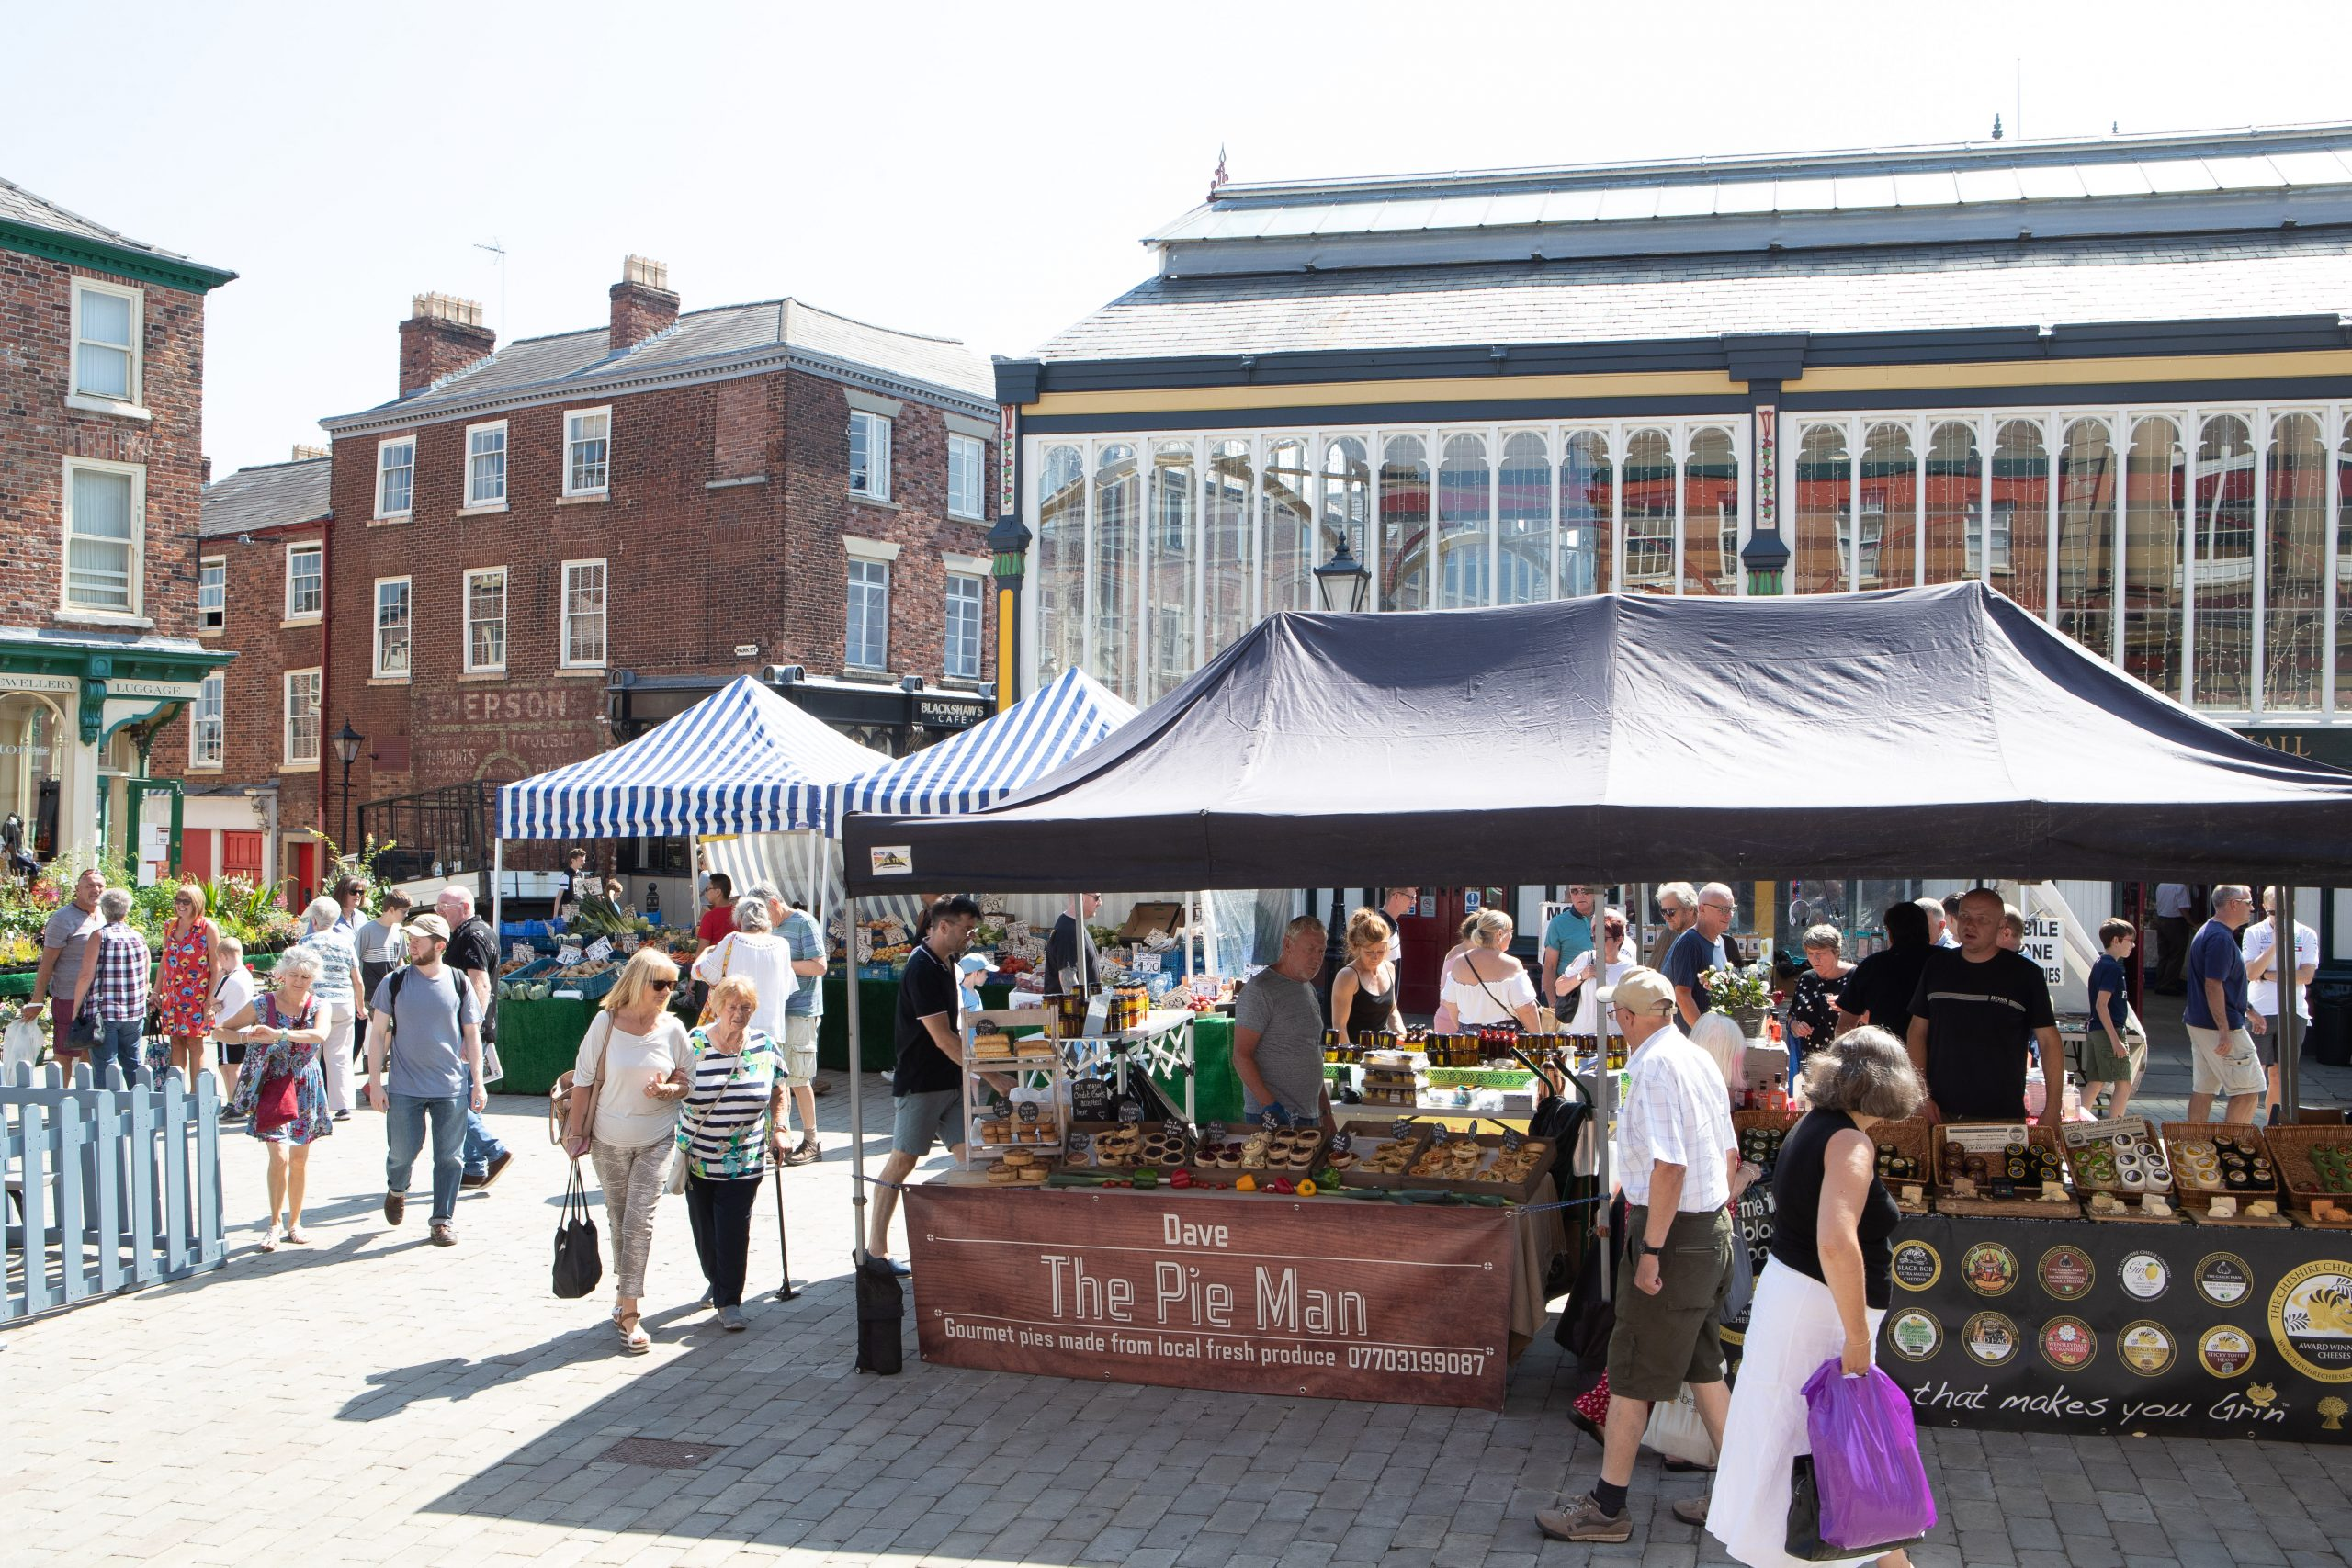 Stockport's Makers Market